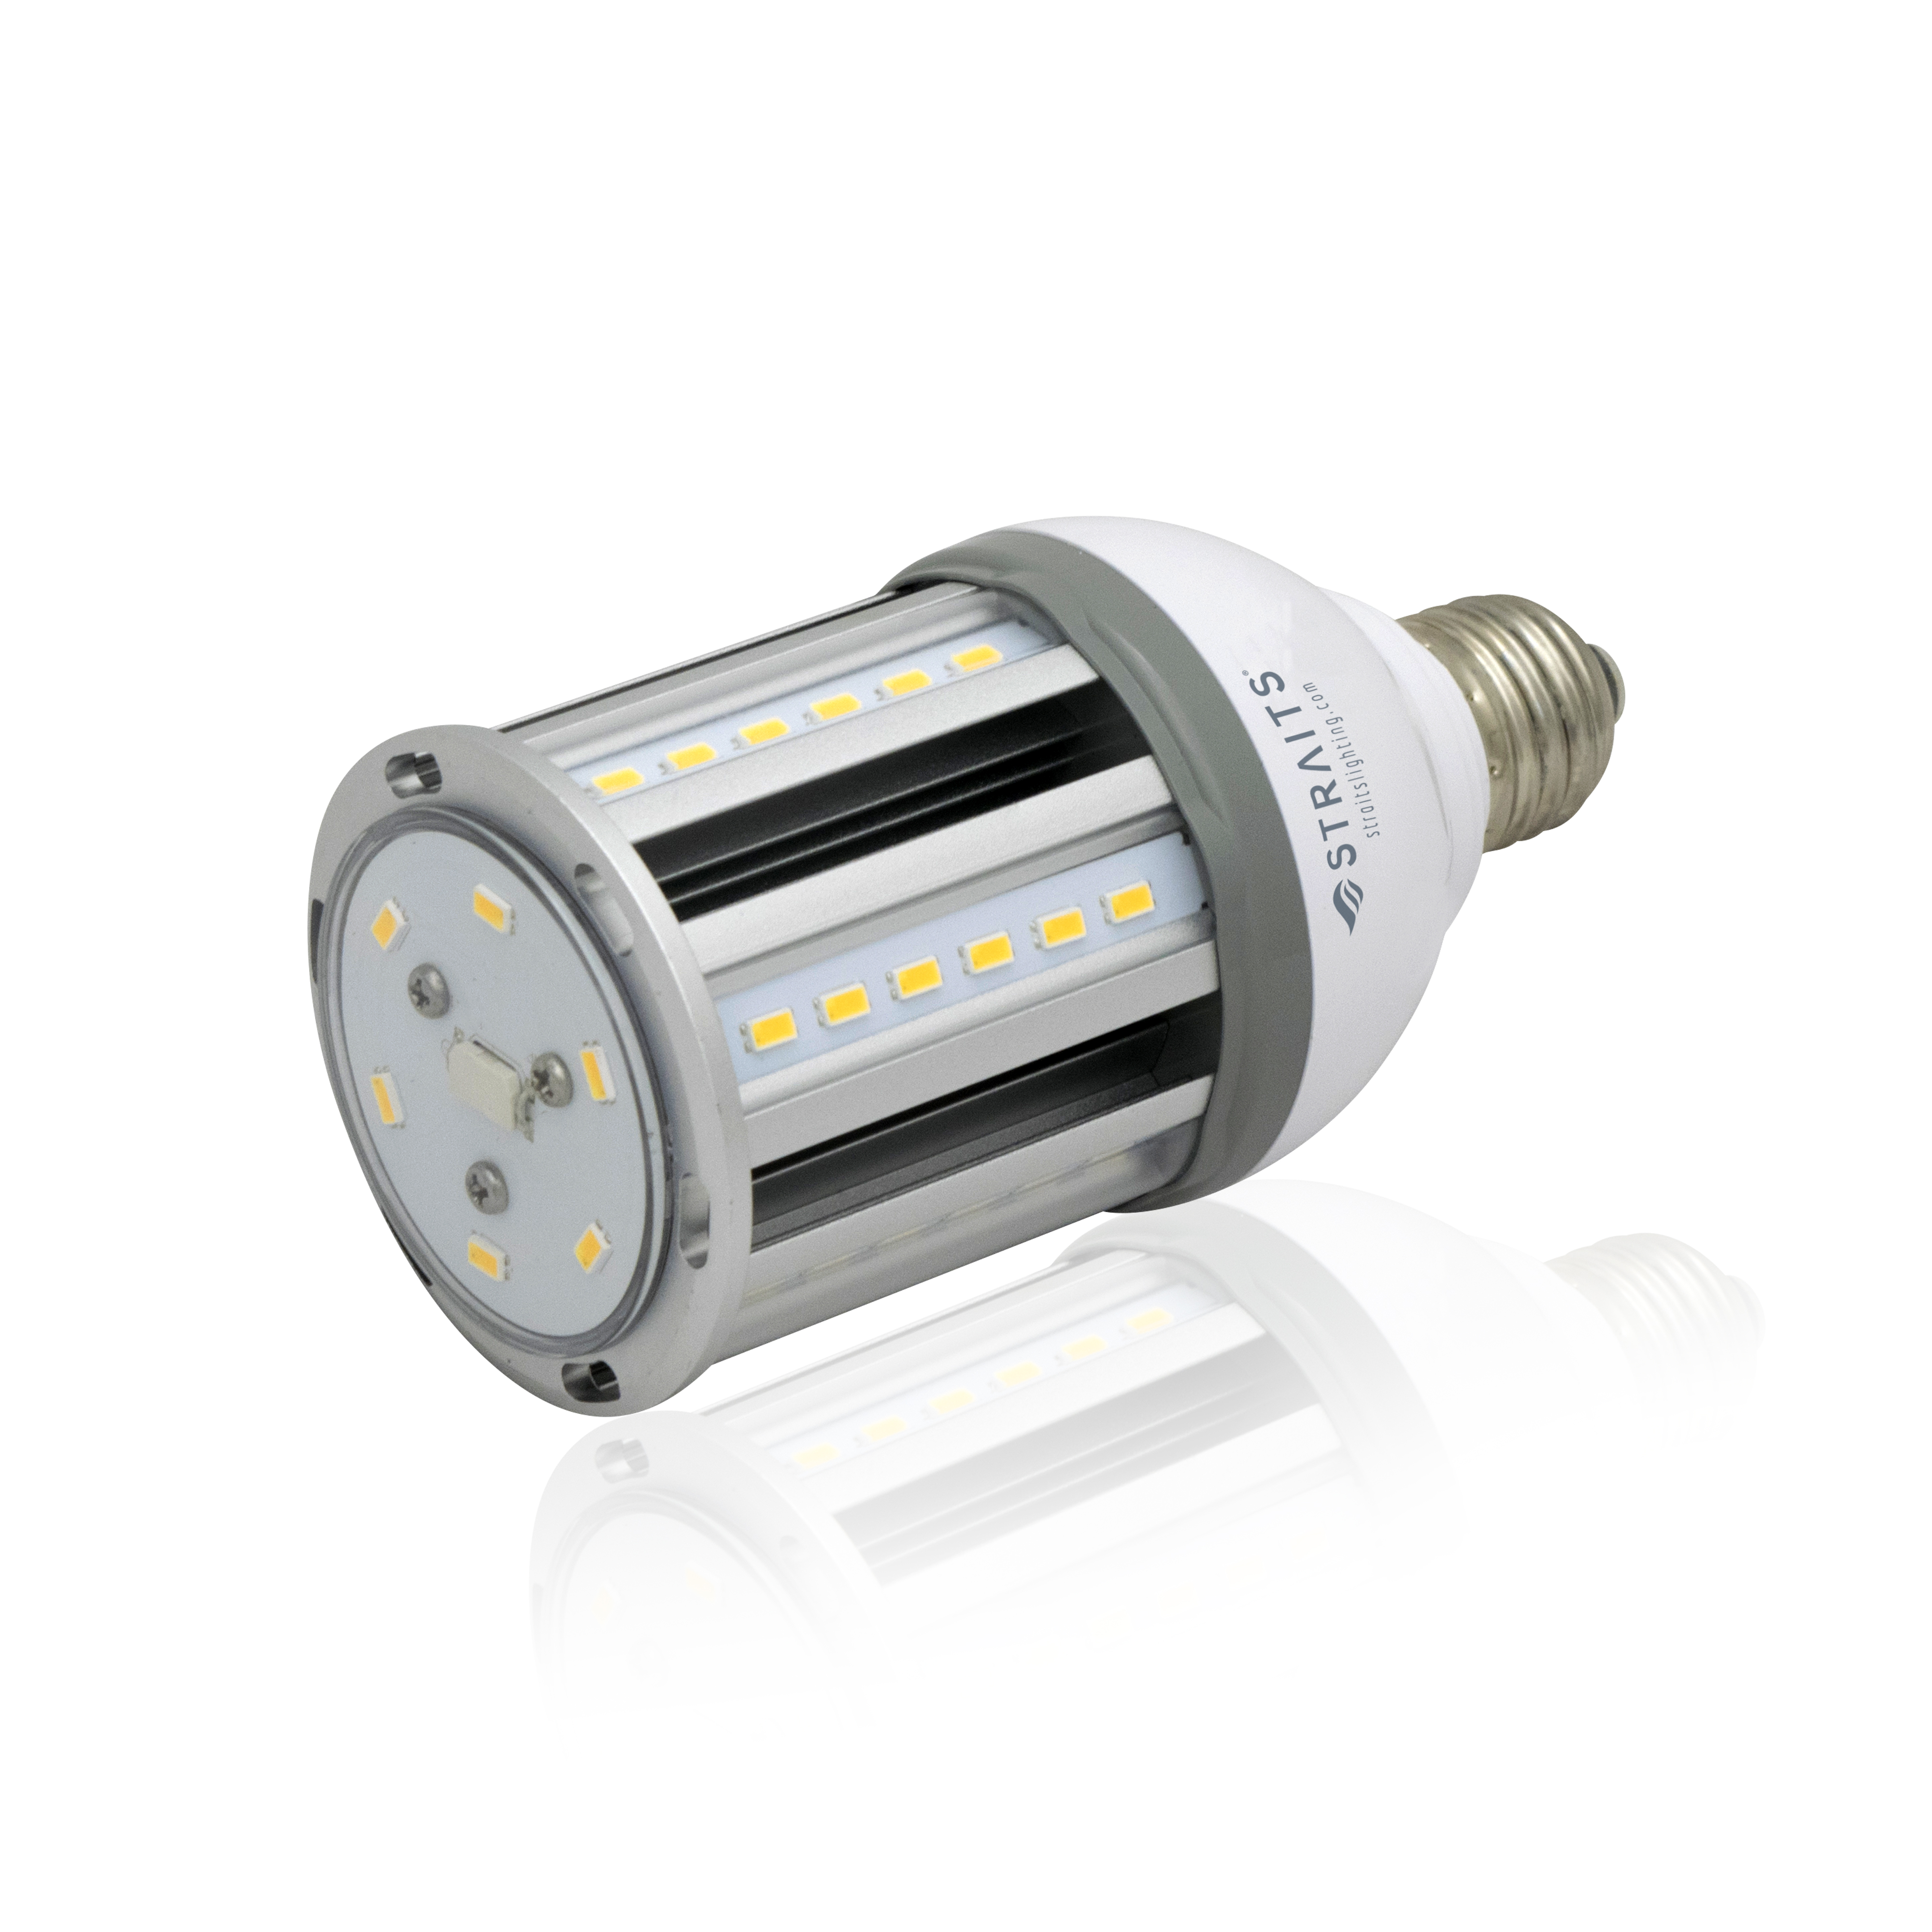 Beam 360 LED Corn Lamp - 15020010